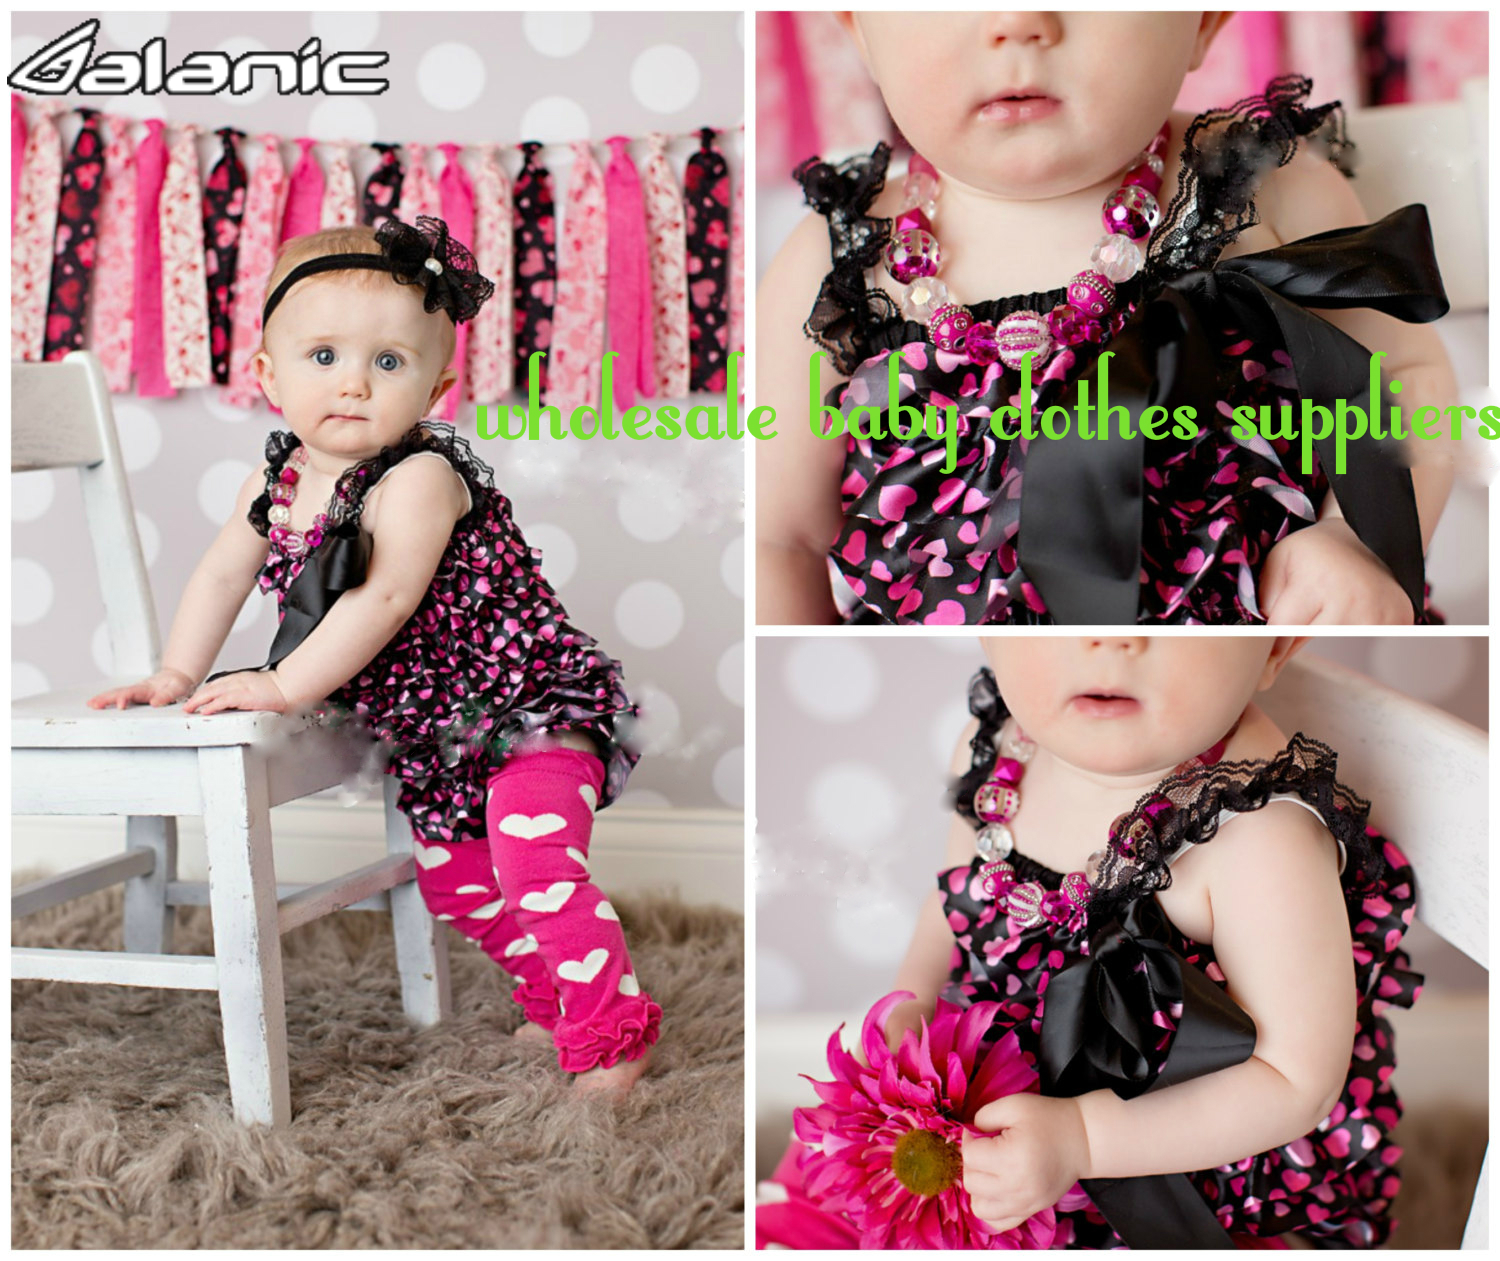 Wholesale Designer Clothing For Kids And Baby Spunk Up The Kid s Wardrobe